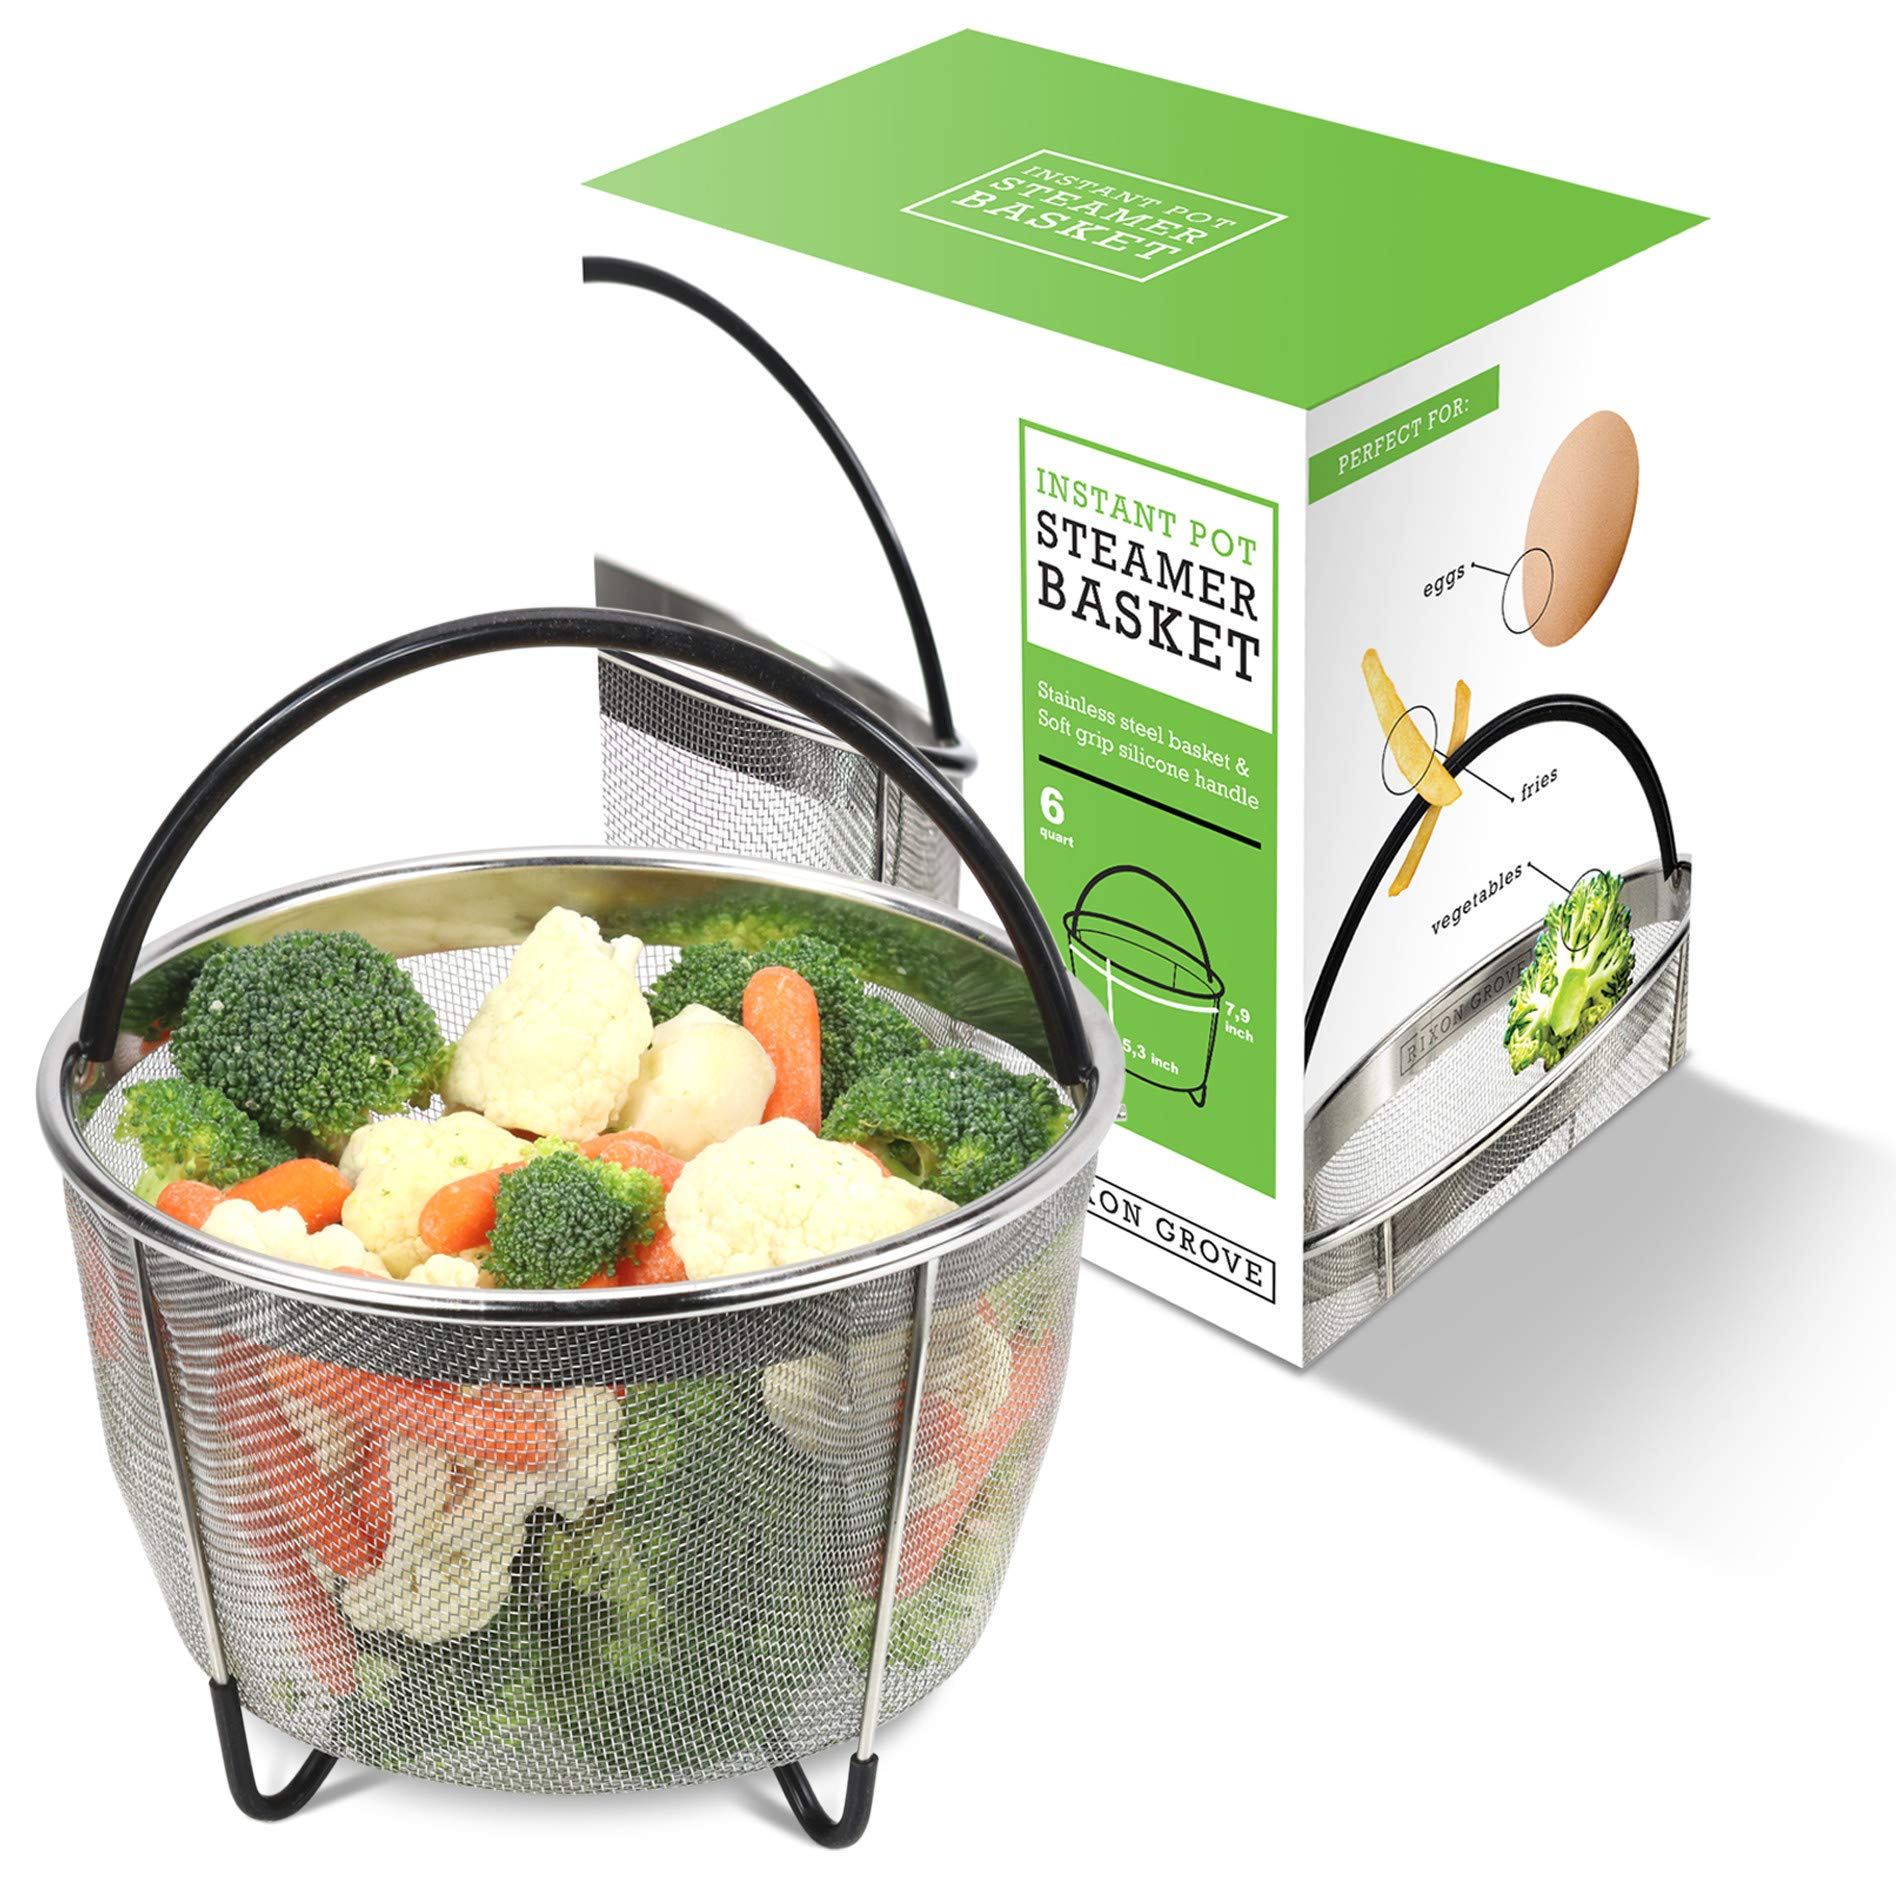 Rixon Grove Steamer Basket Compatible with Instant Pot 6 quart and 8 quart Duo, Ultra, Lux, Nova, and Viva Models, plus most other Pressure Cookers.